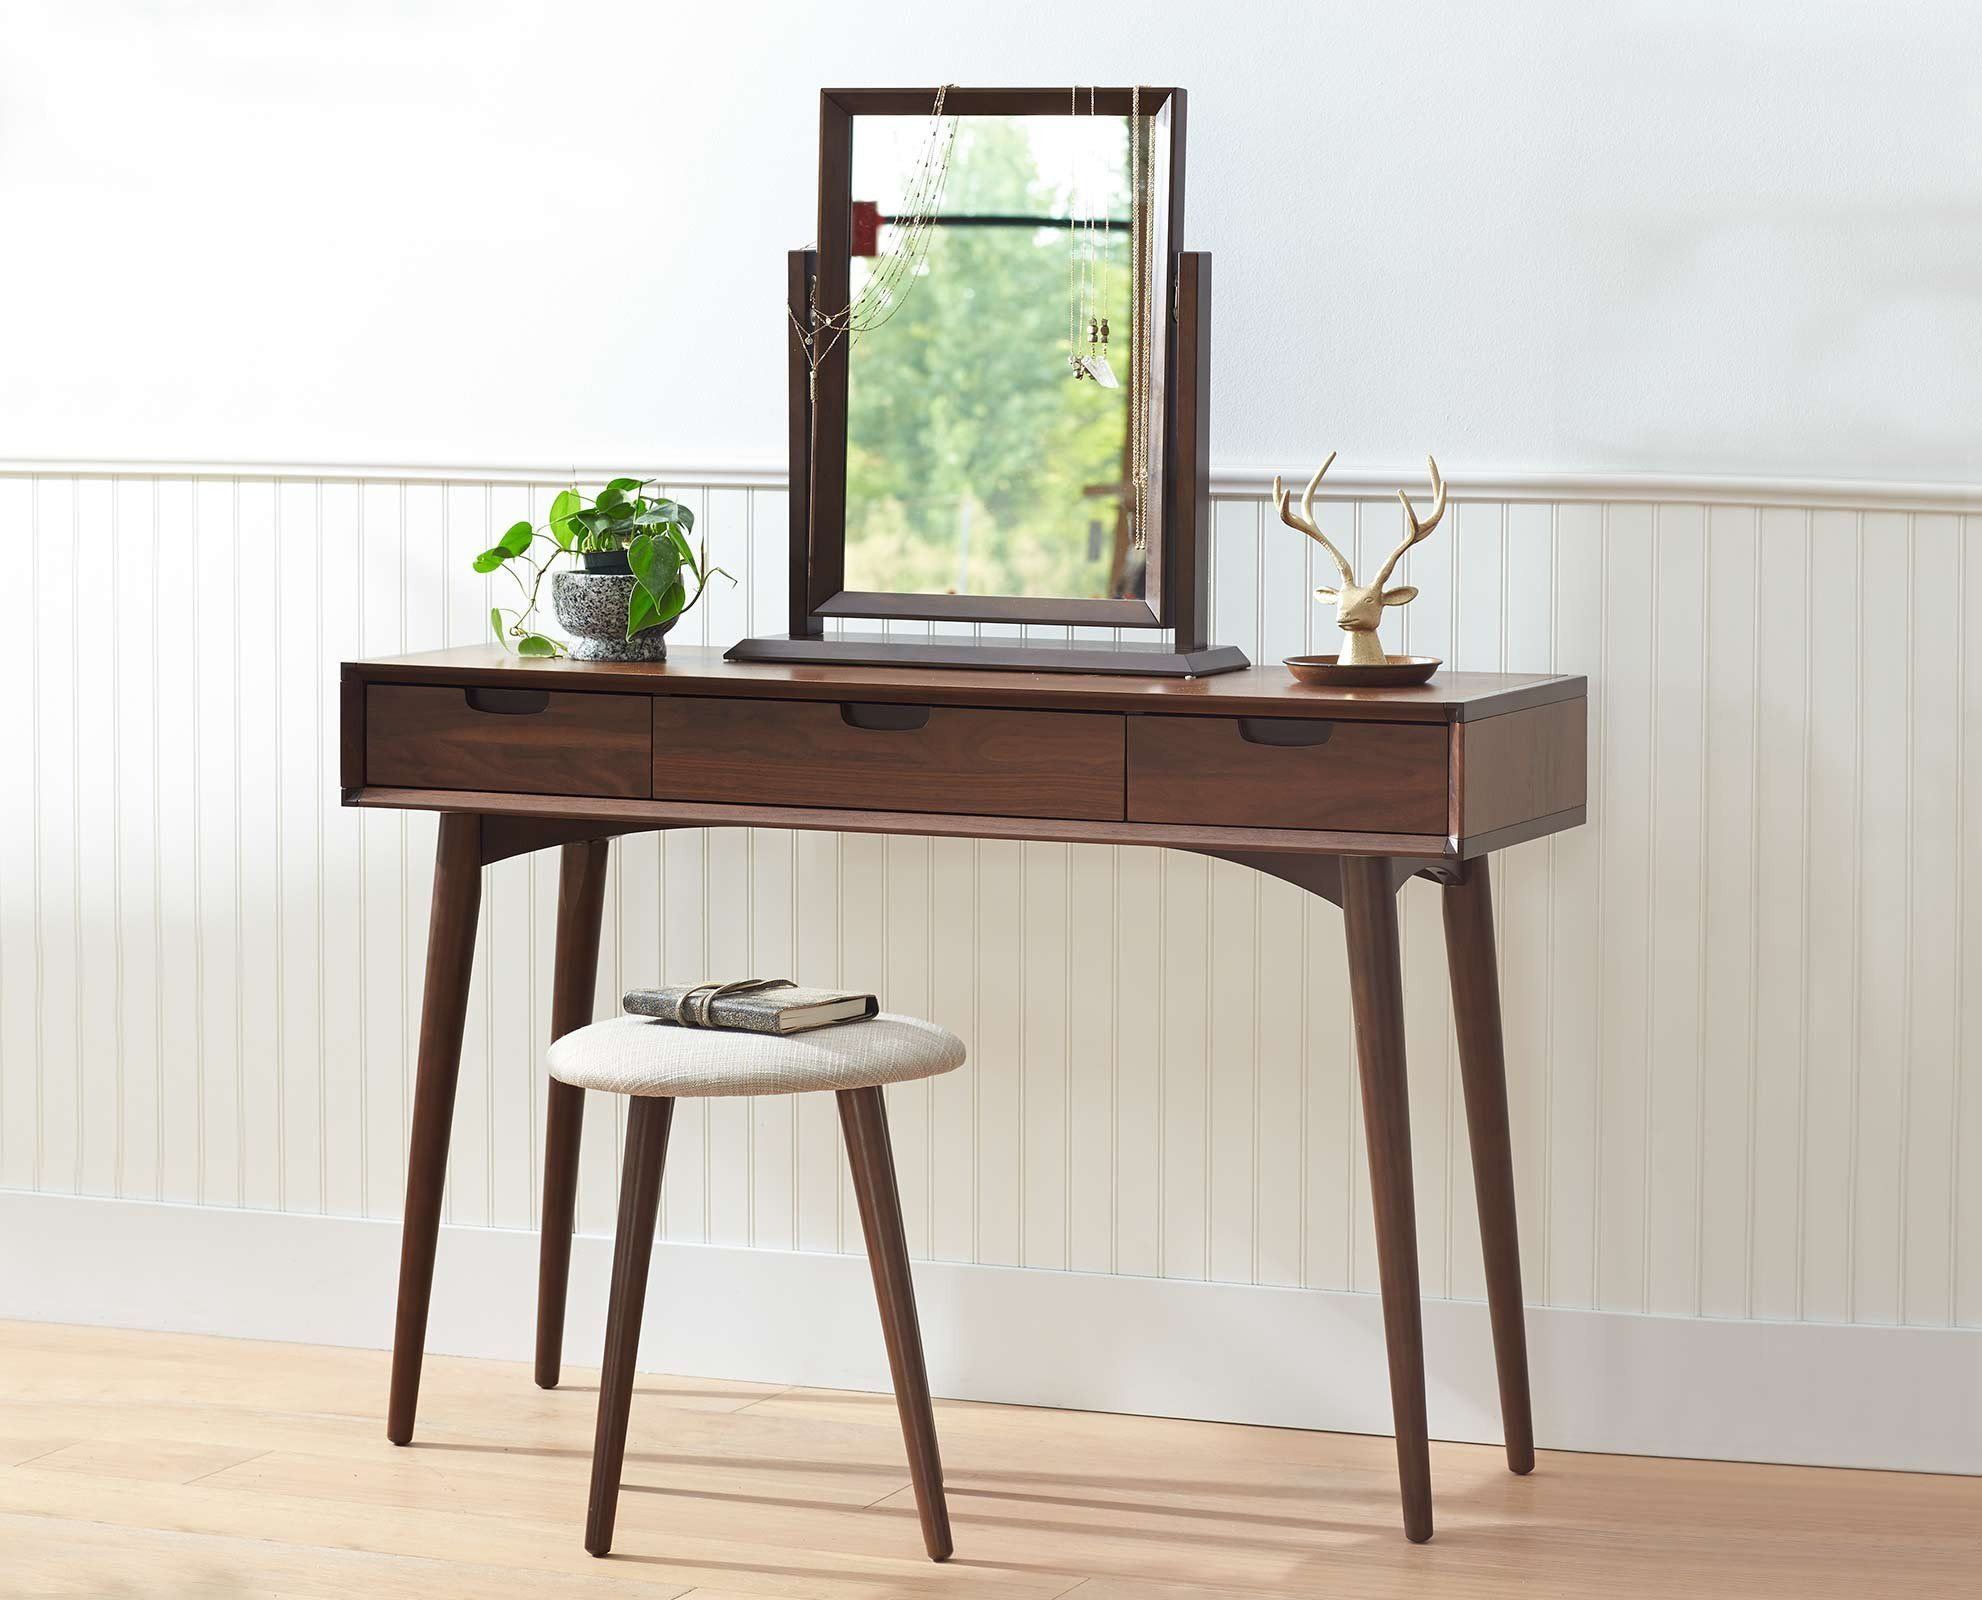 Juneau vanity table vanity tables walnut veneer and vanities